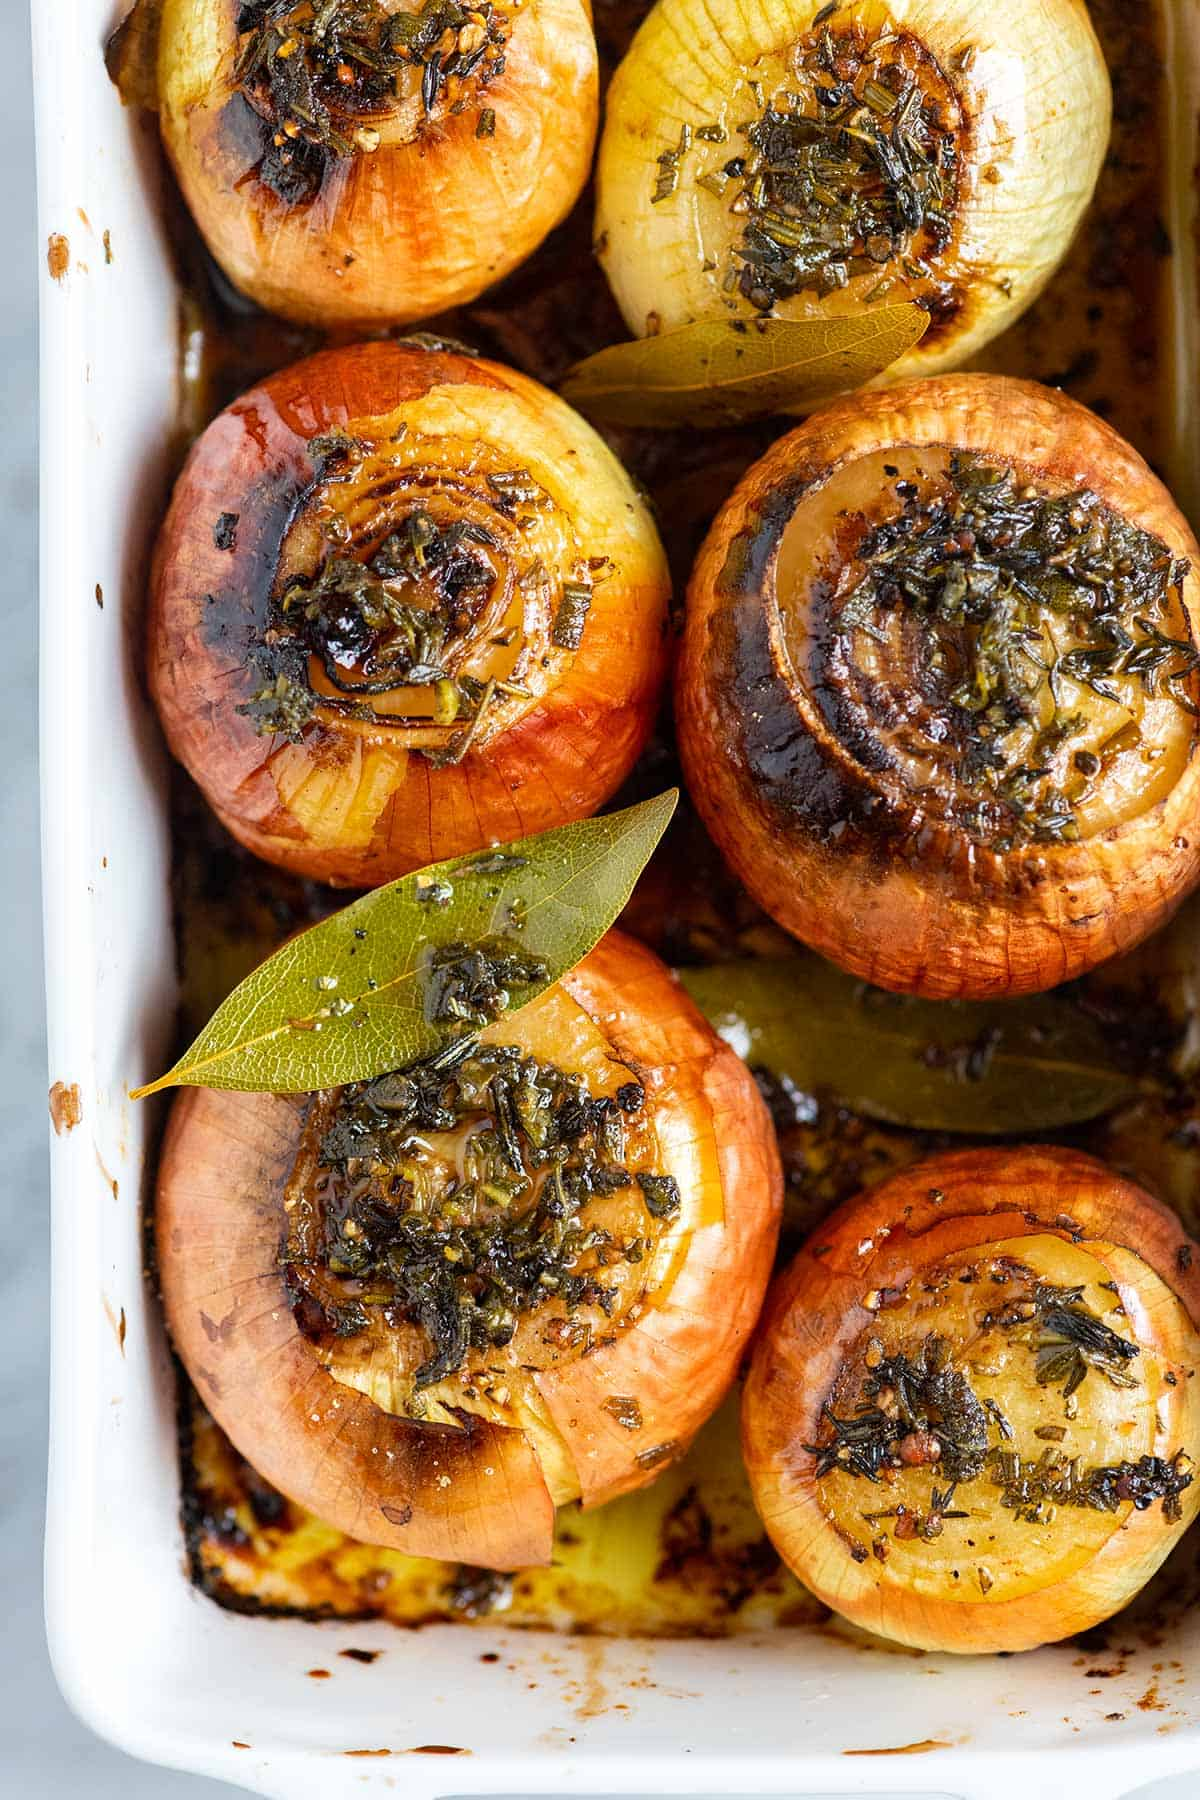 Whole roasted onions in a baking dish.